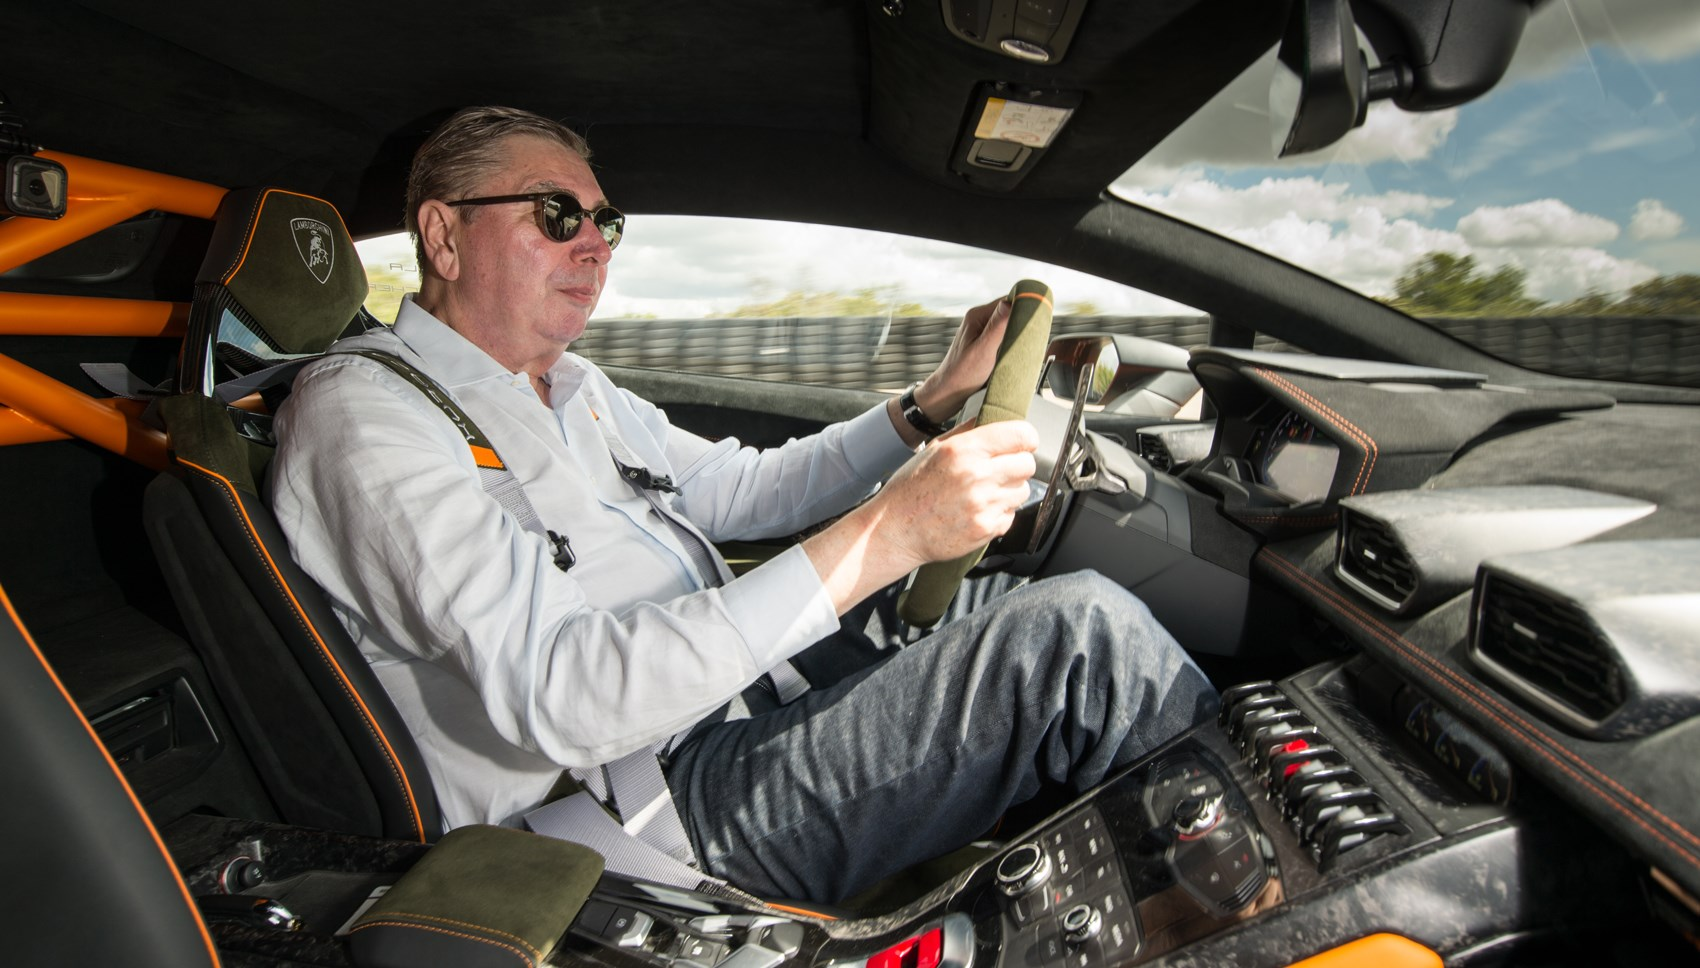 Huracan Sterrato Georg driving